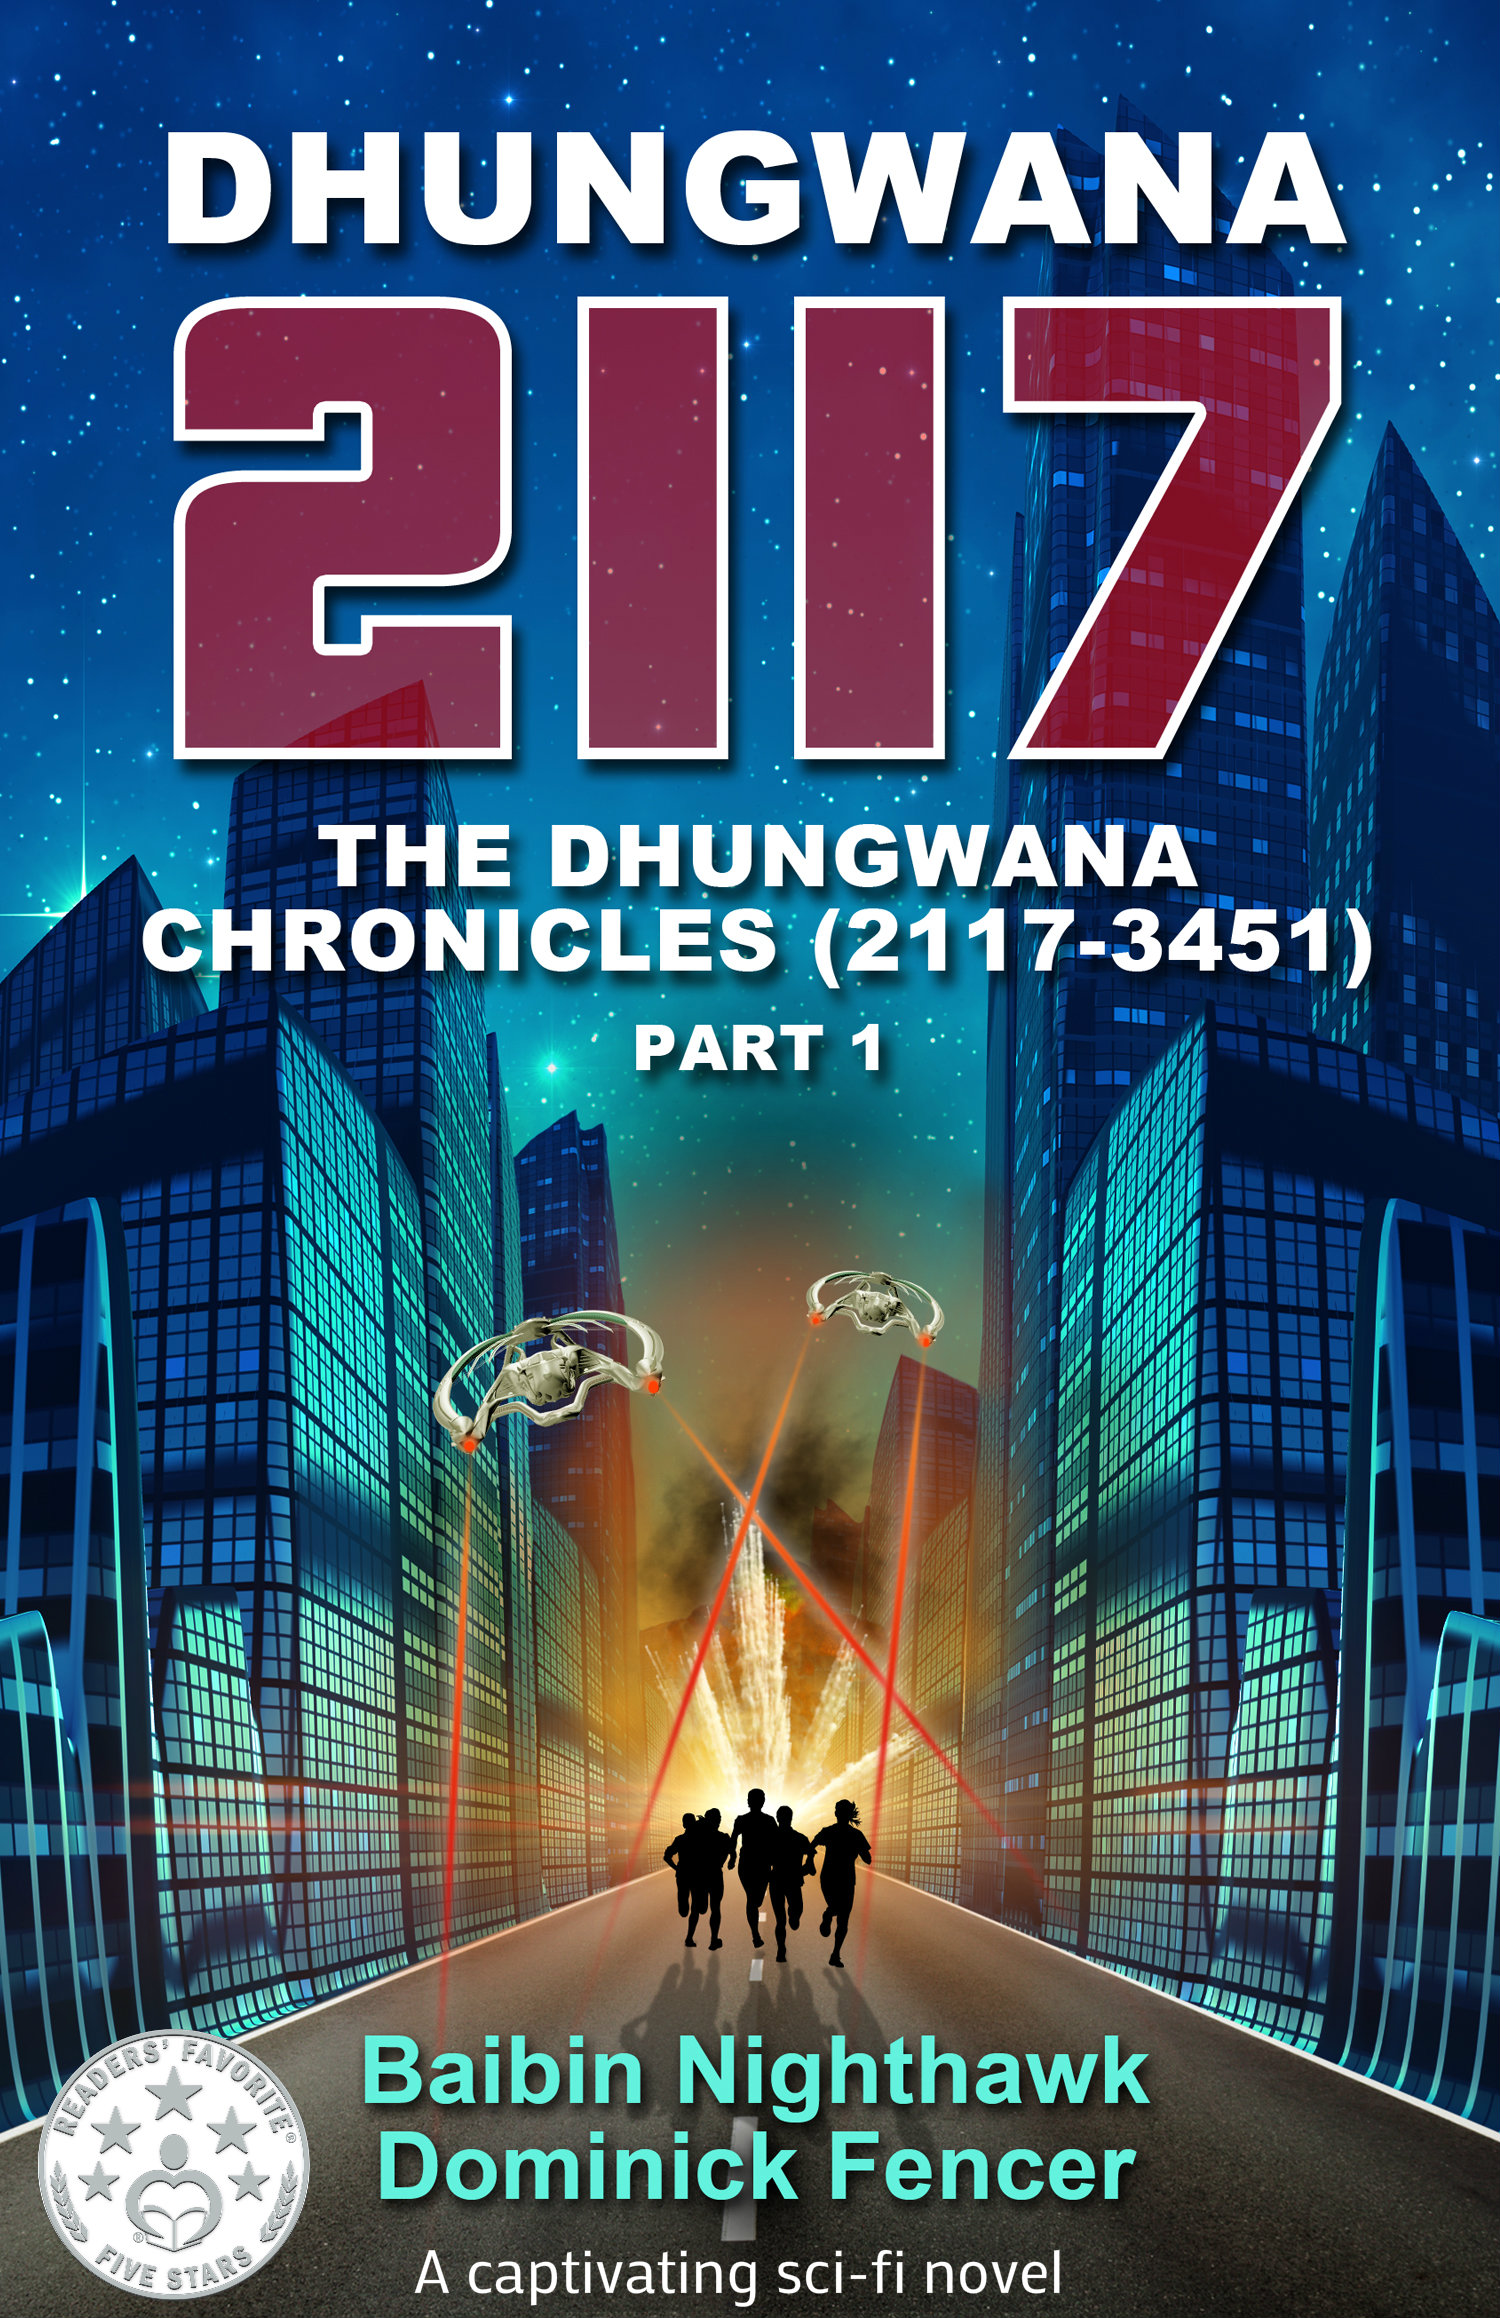 Dhungwana 2117 - The Dhungwana Chronicles (2117- 3451) Part 1